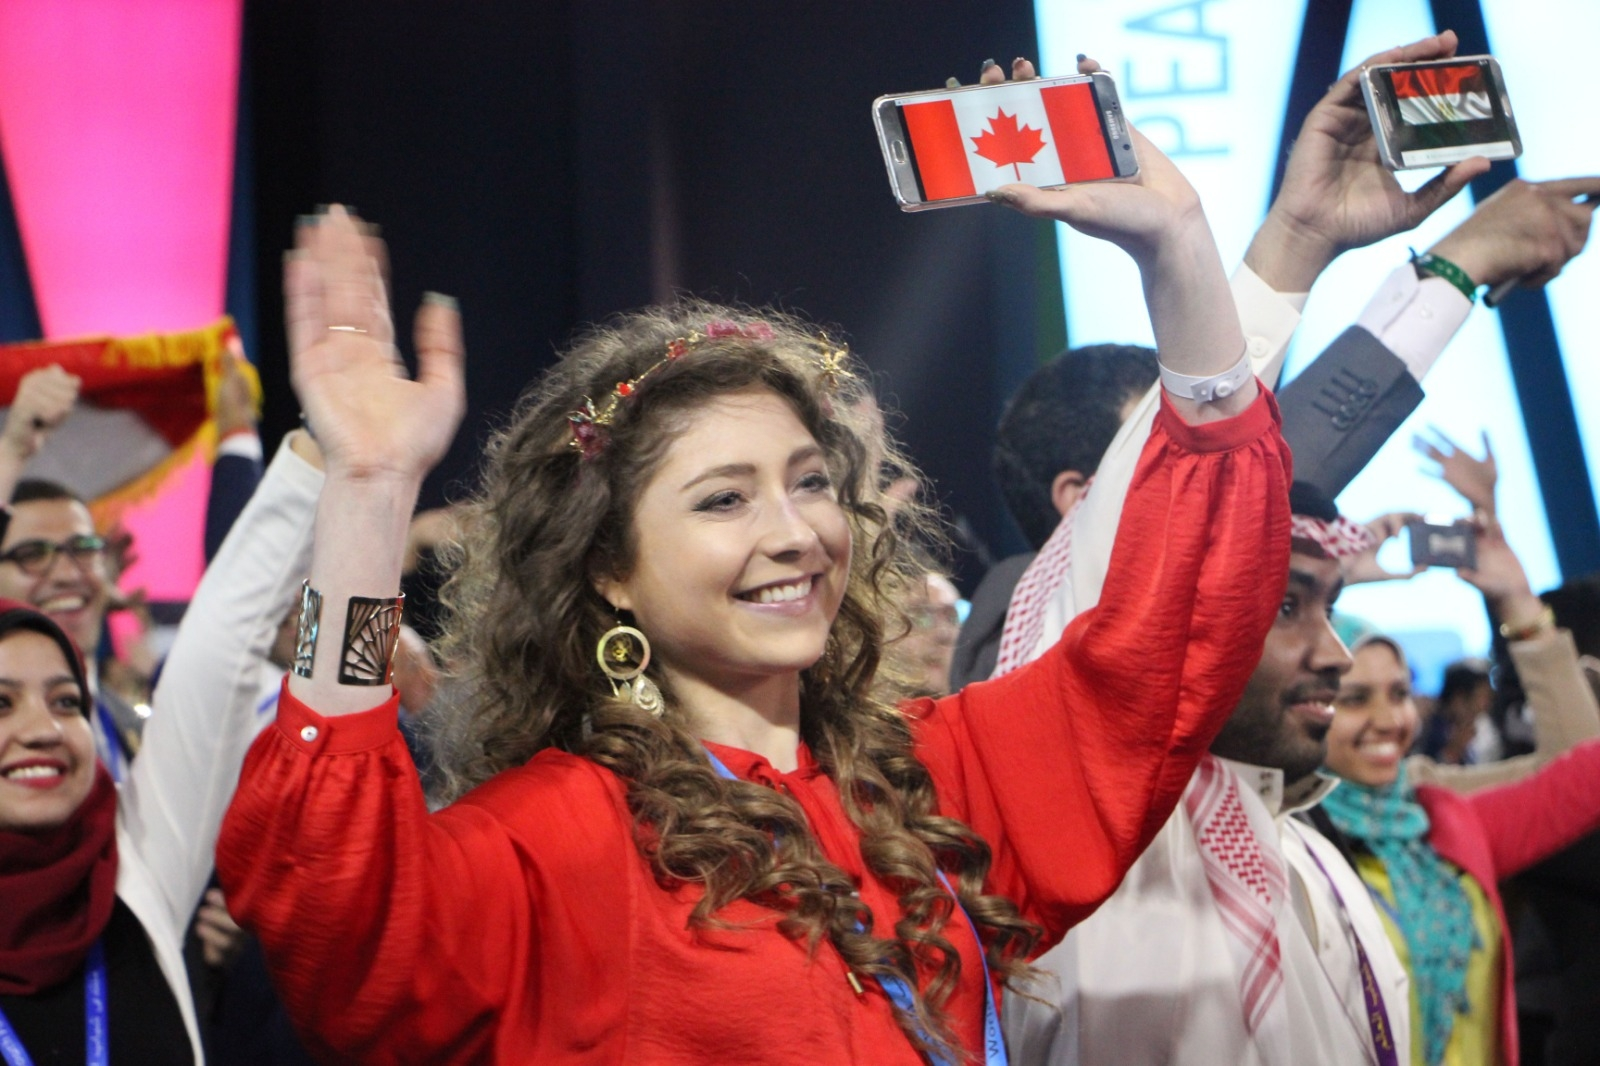 Kelly wearing a red blouse and gold headpiece waving in a crowd holding the canadian flag